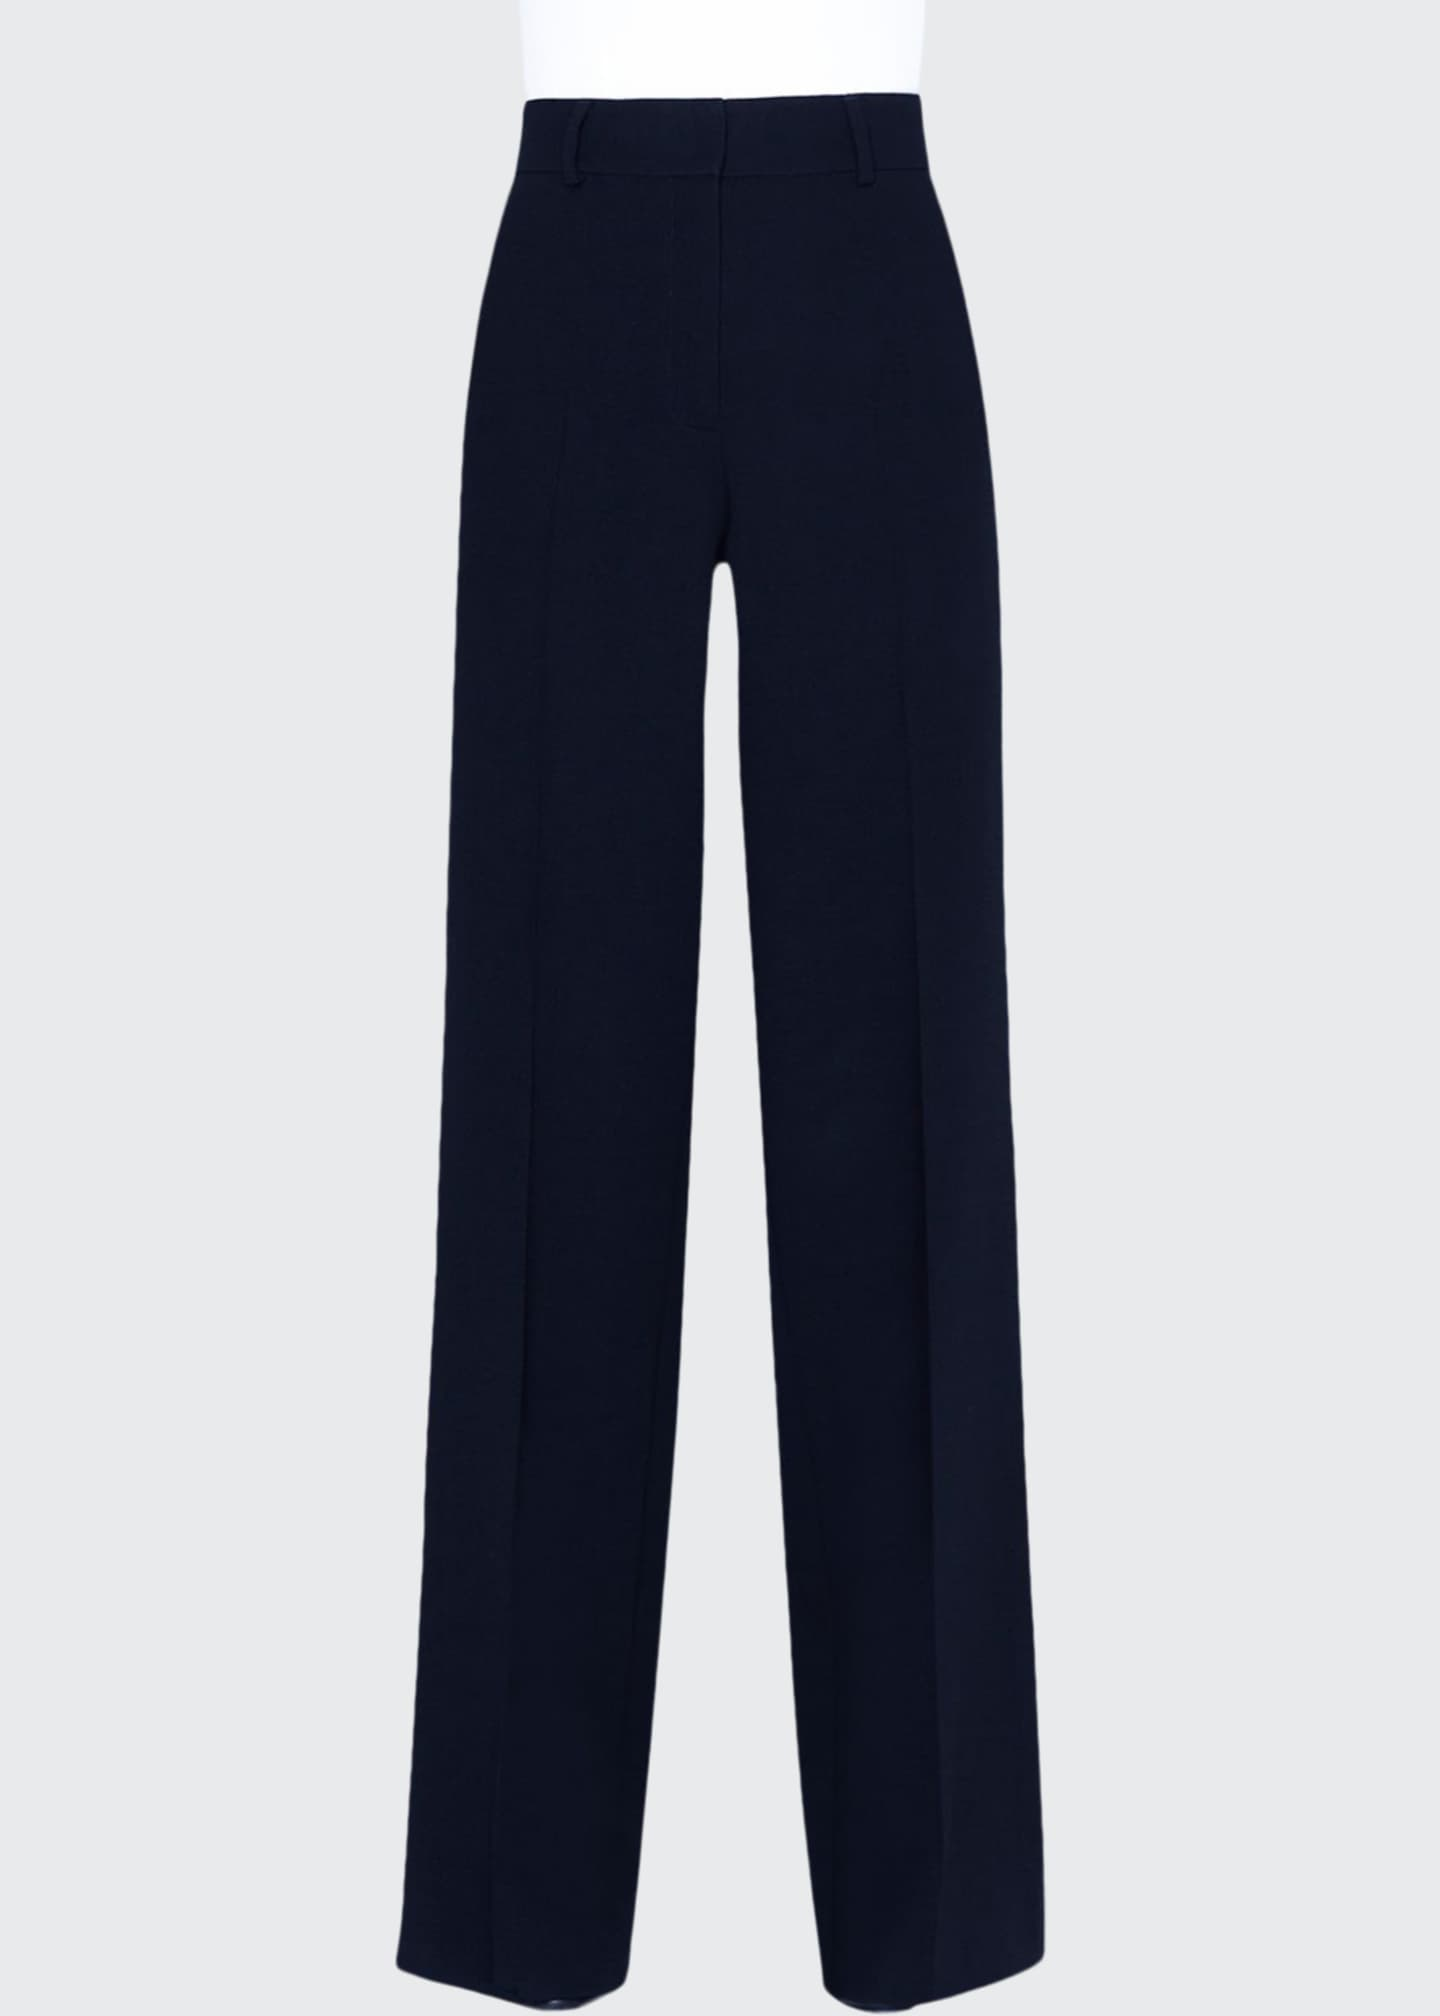 Akris Flore Wool Wide-Leg Pants